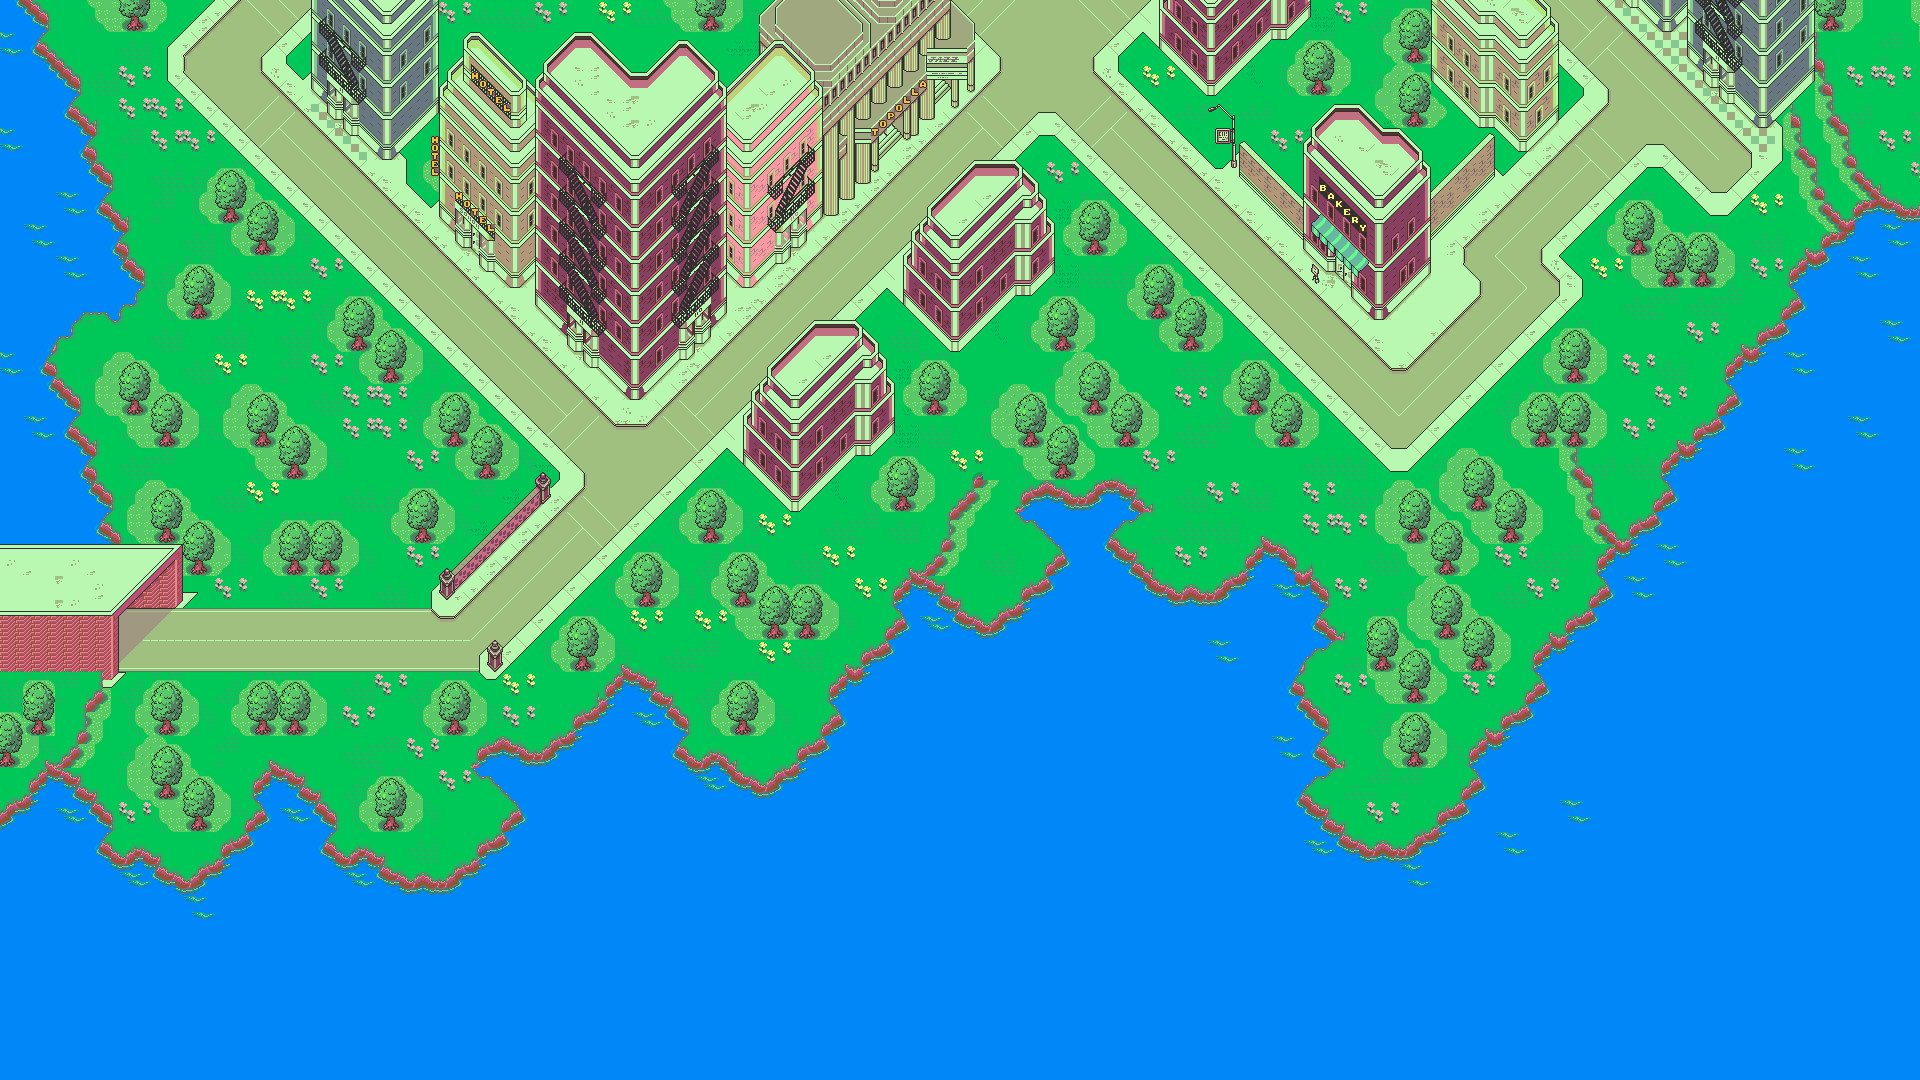 Earthbound ID: 531928540 Wallpaper for Free – Newest High Resolution Pic